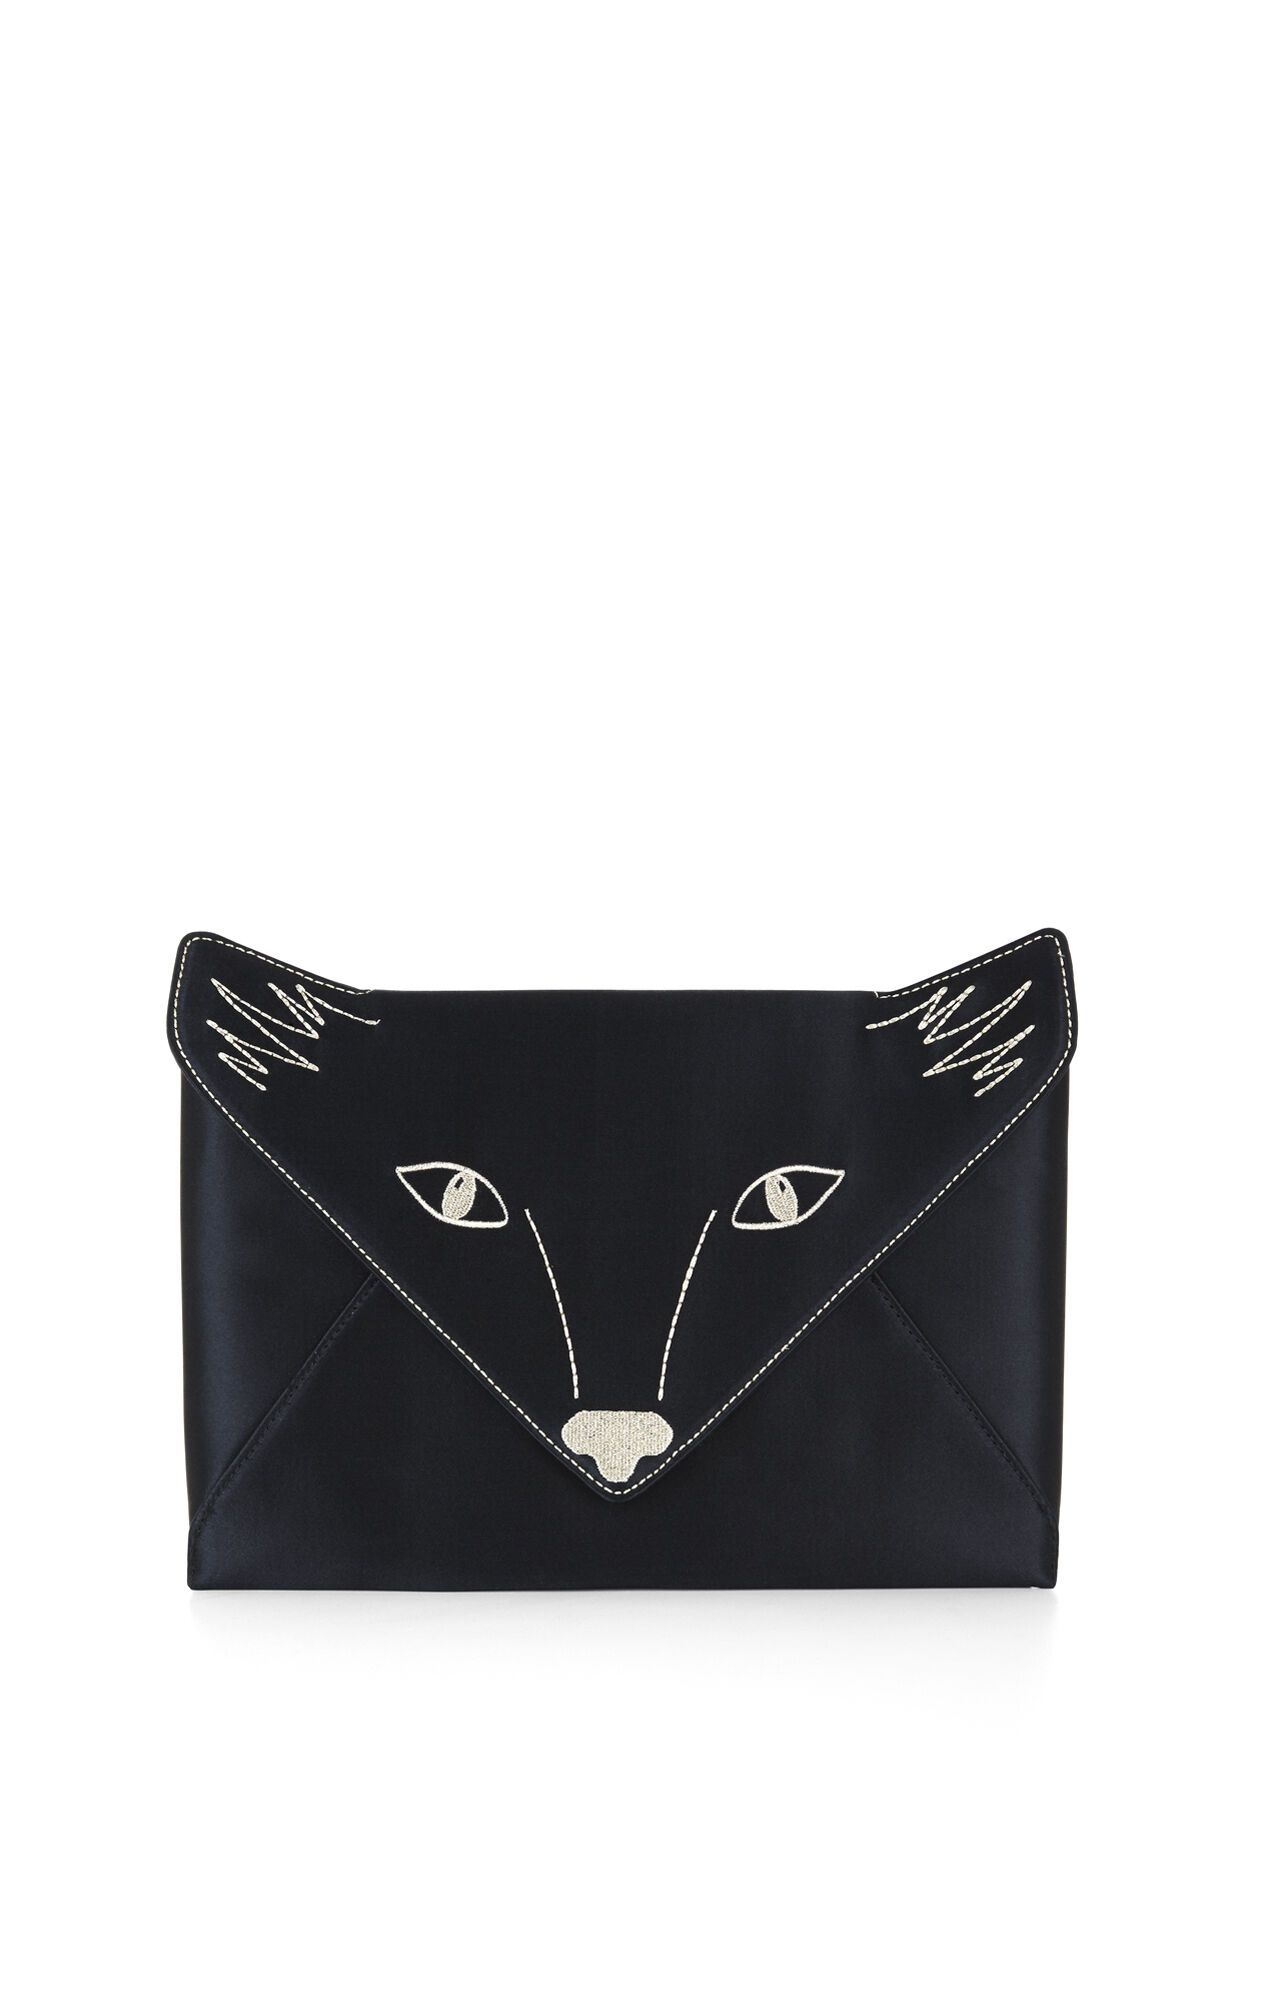 Foxy Embroidered Satin Envelope Clutch